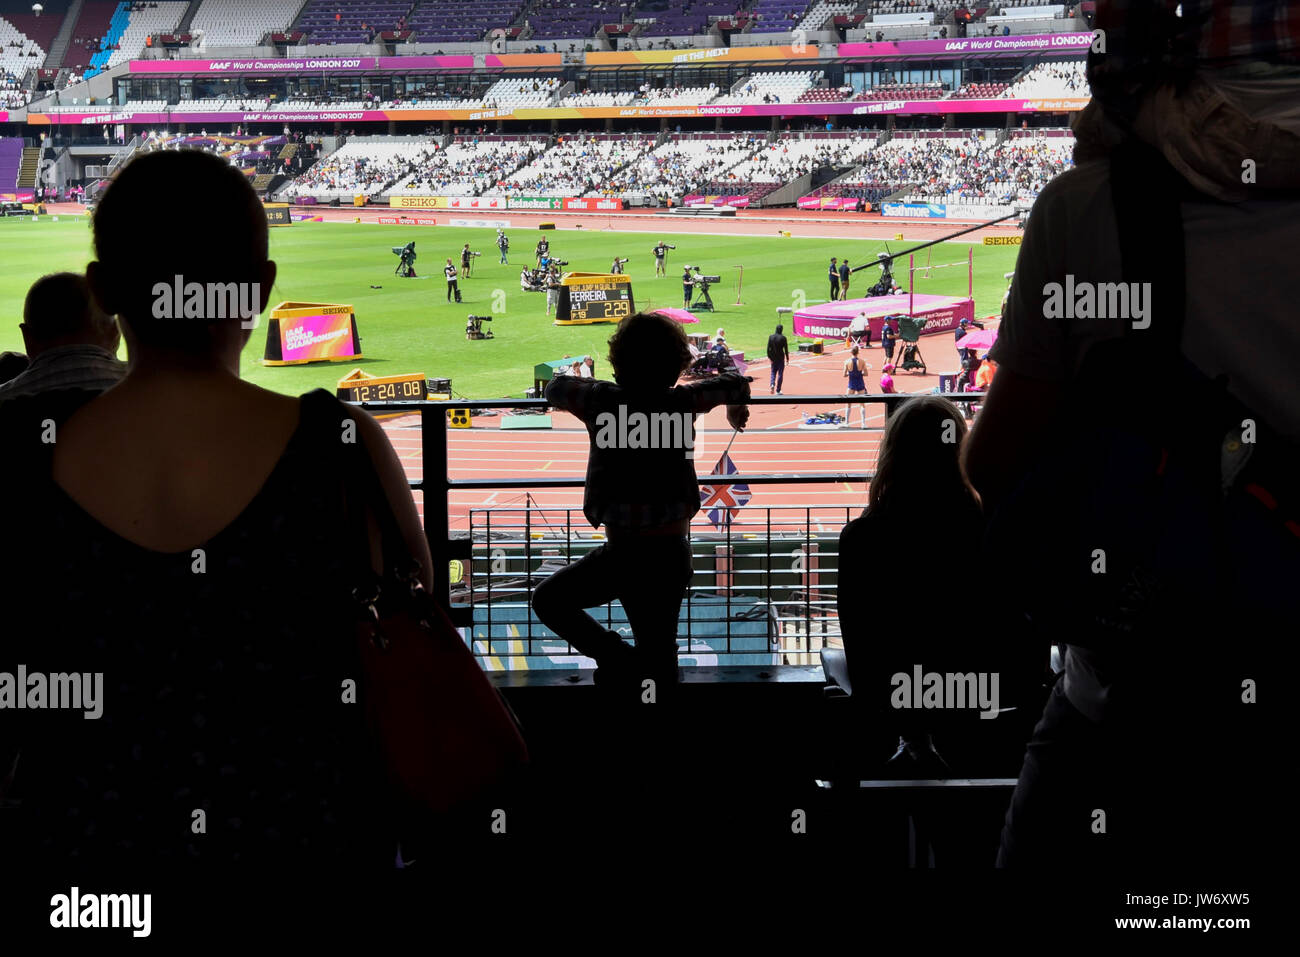 London, UK.  11 August 2017. A young fan is seen in silhouette watching the high jump qualification at the London Stock Photo